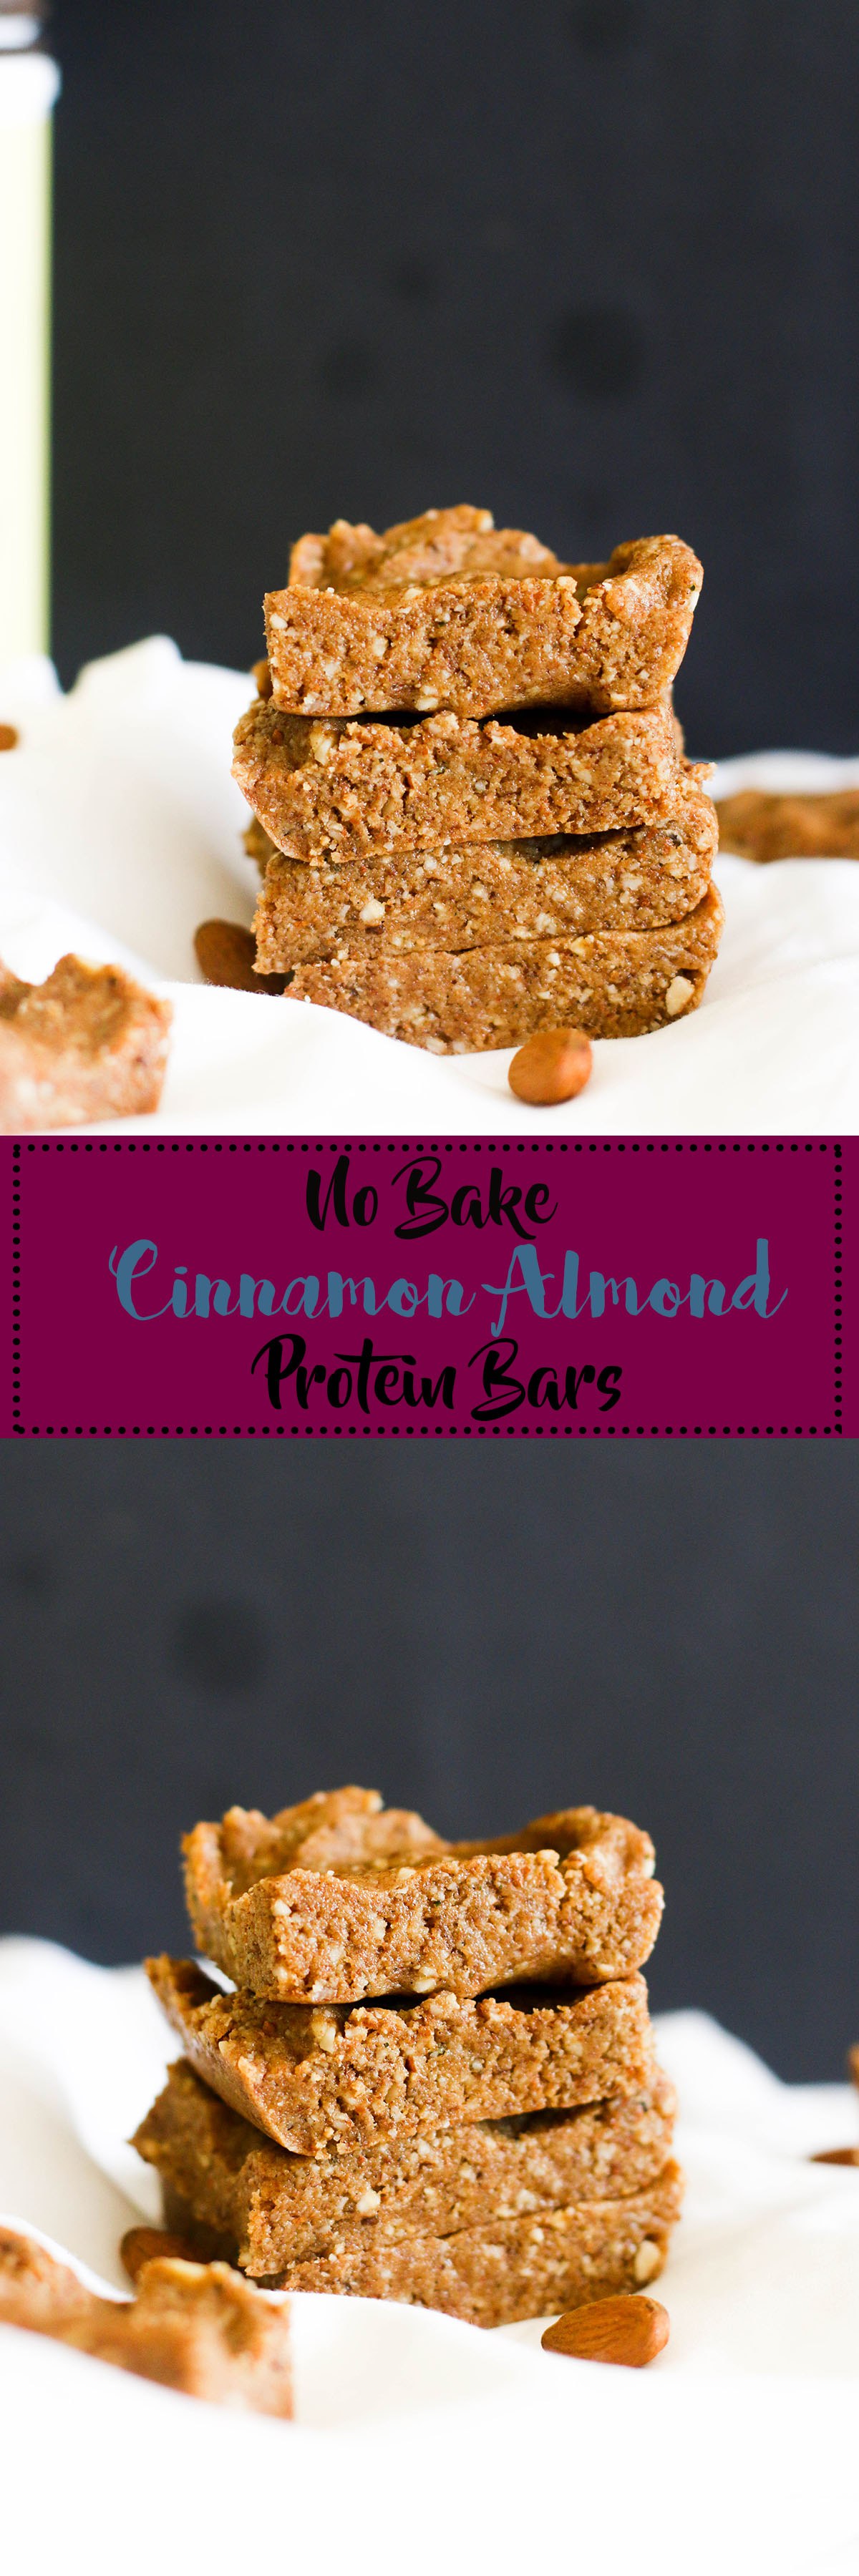 These no bake cinnamon almond protein bars are gluten free, refined sugar free, packed with protein, and the perfect snack. They're made with all natural ingredients and come together in an hour.